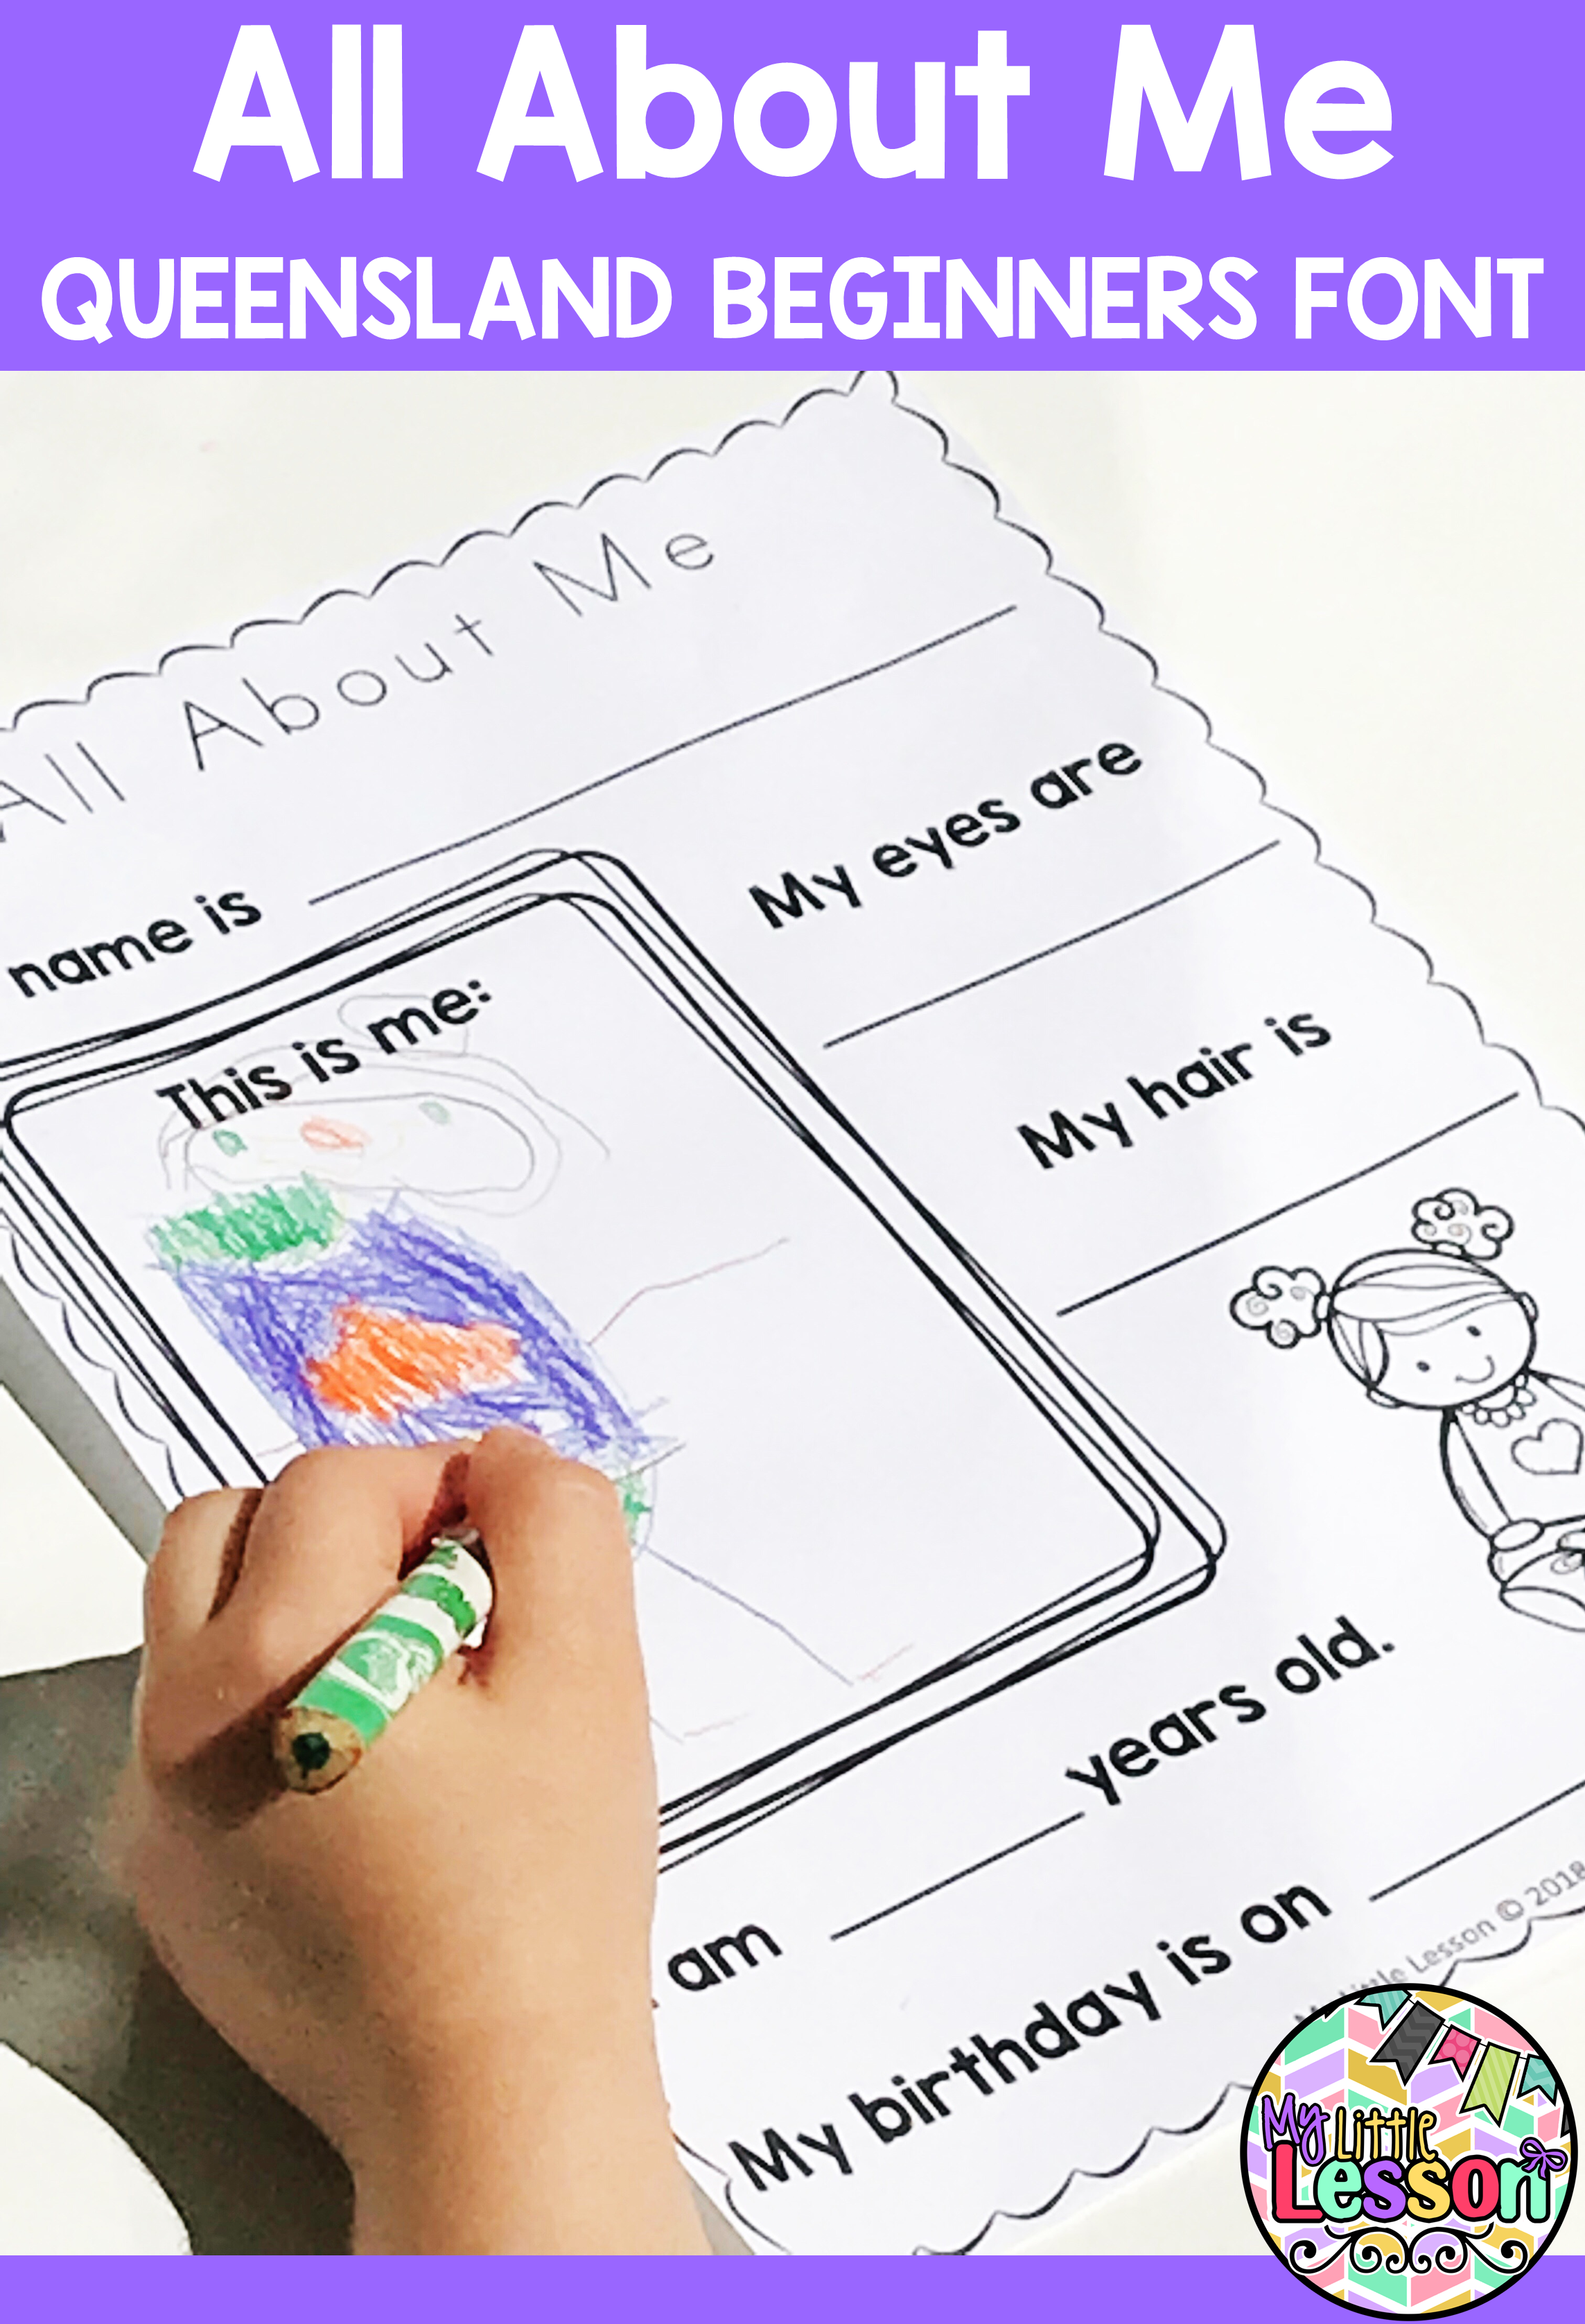 All About Me Qld Beginners Font Worksheets Booklet